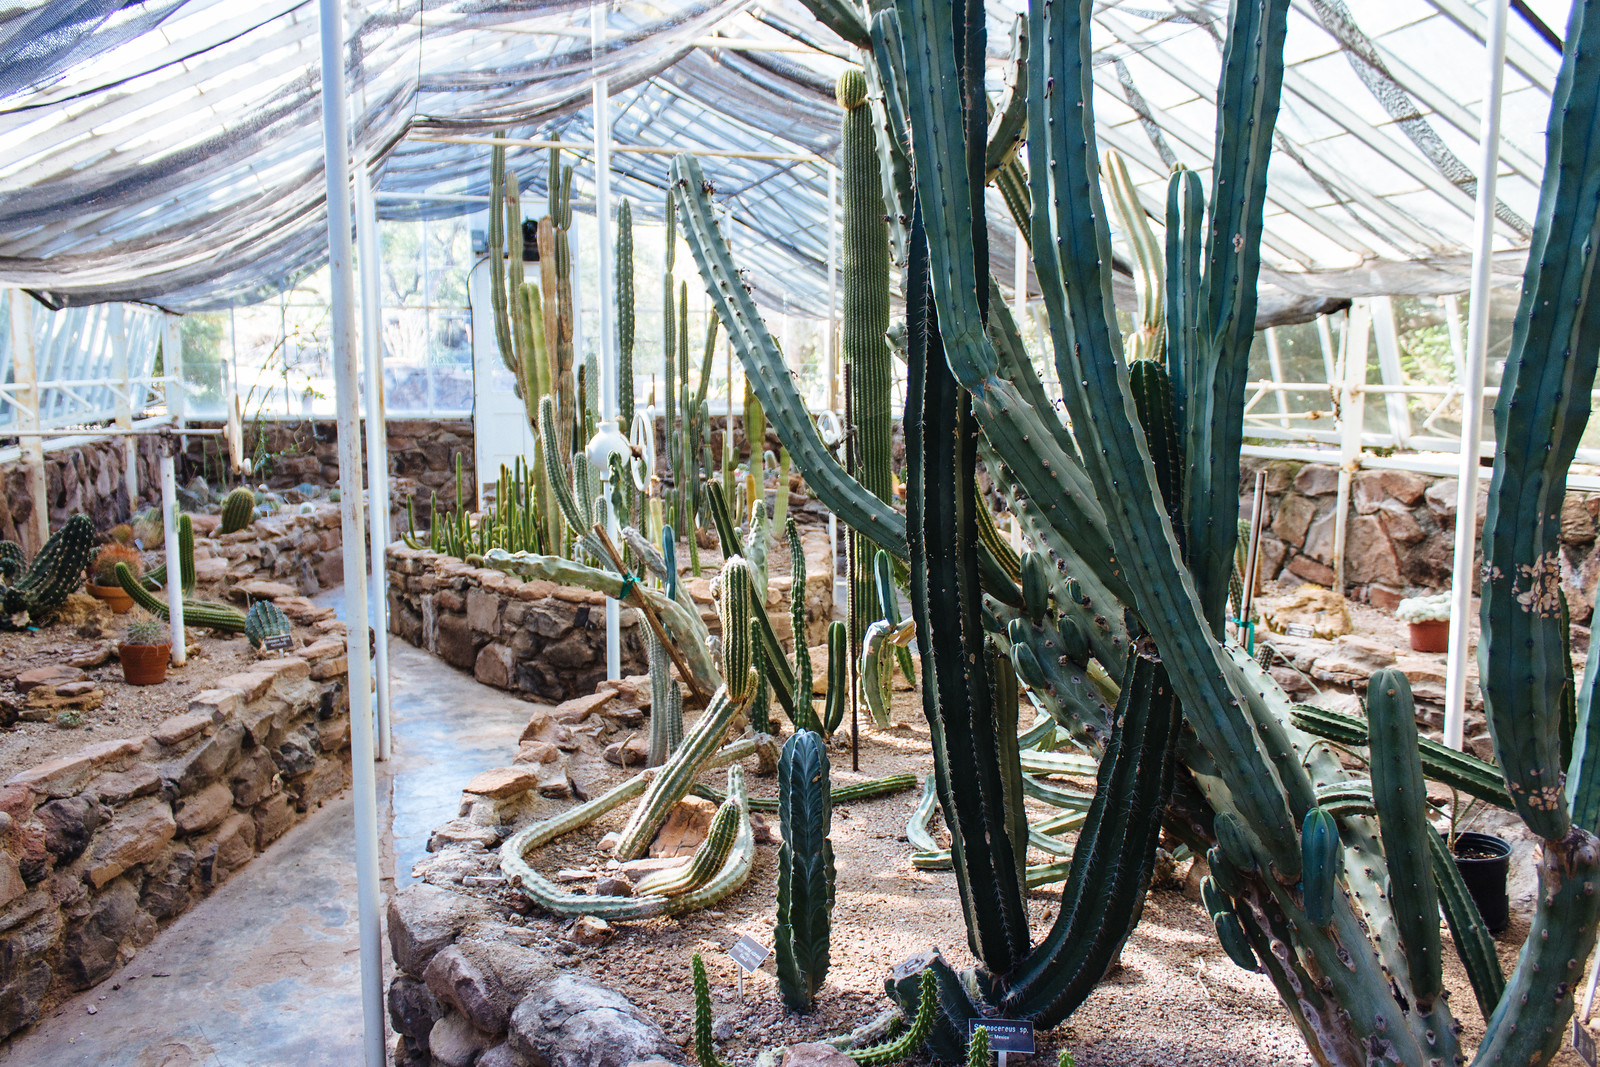 Greenhouse full of different varieties of cactus